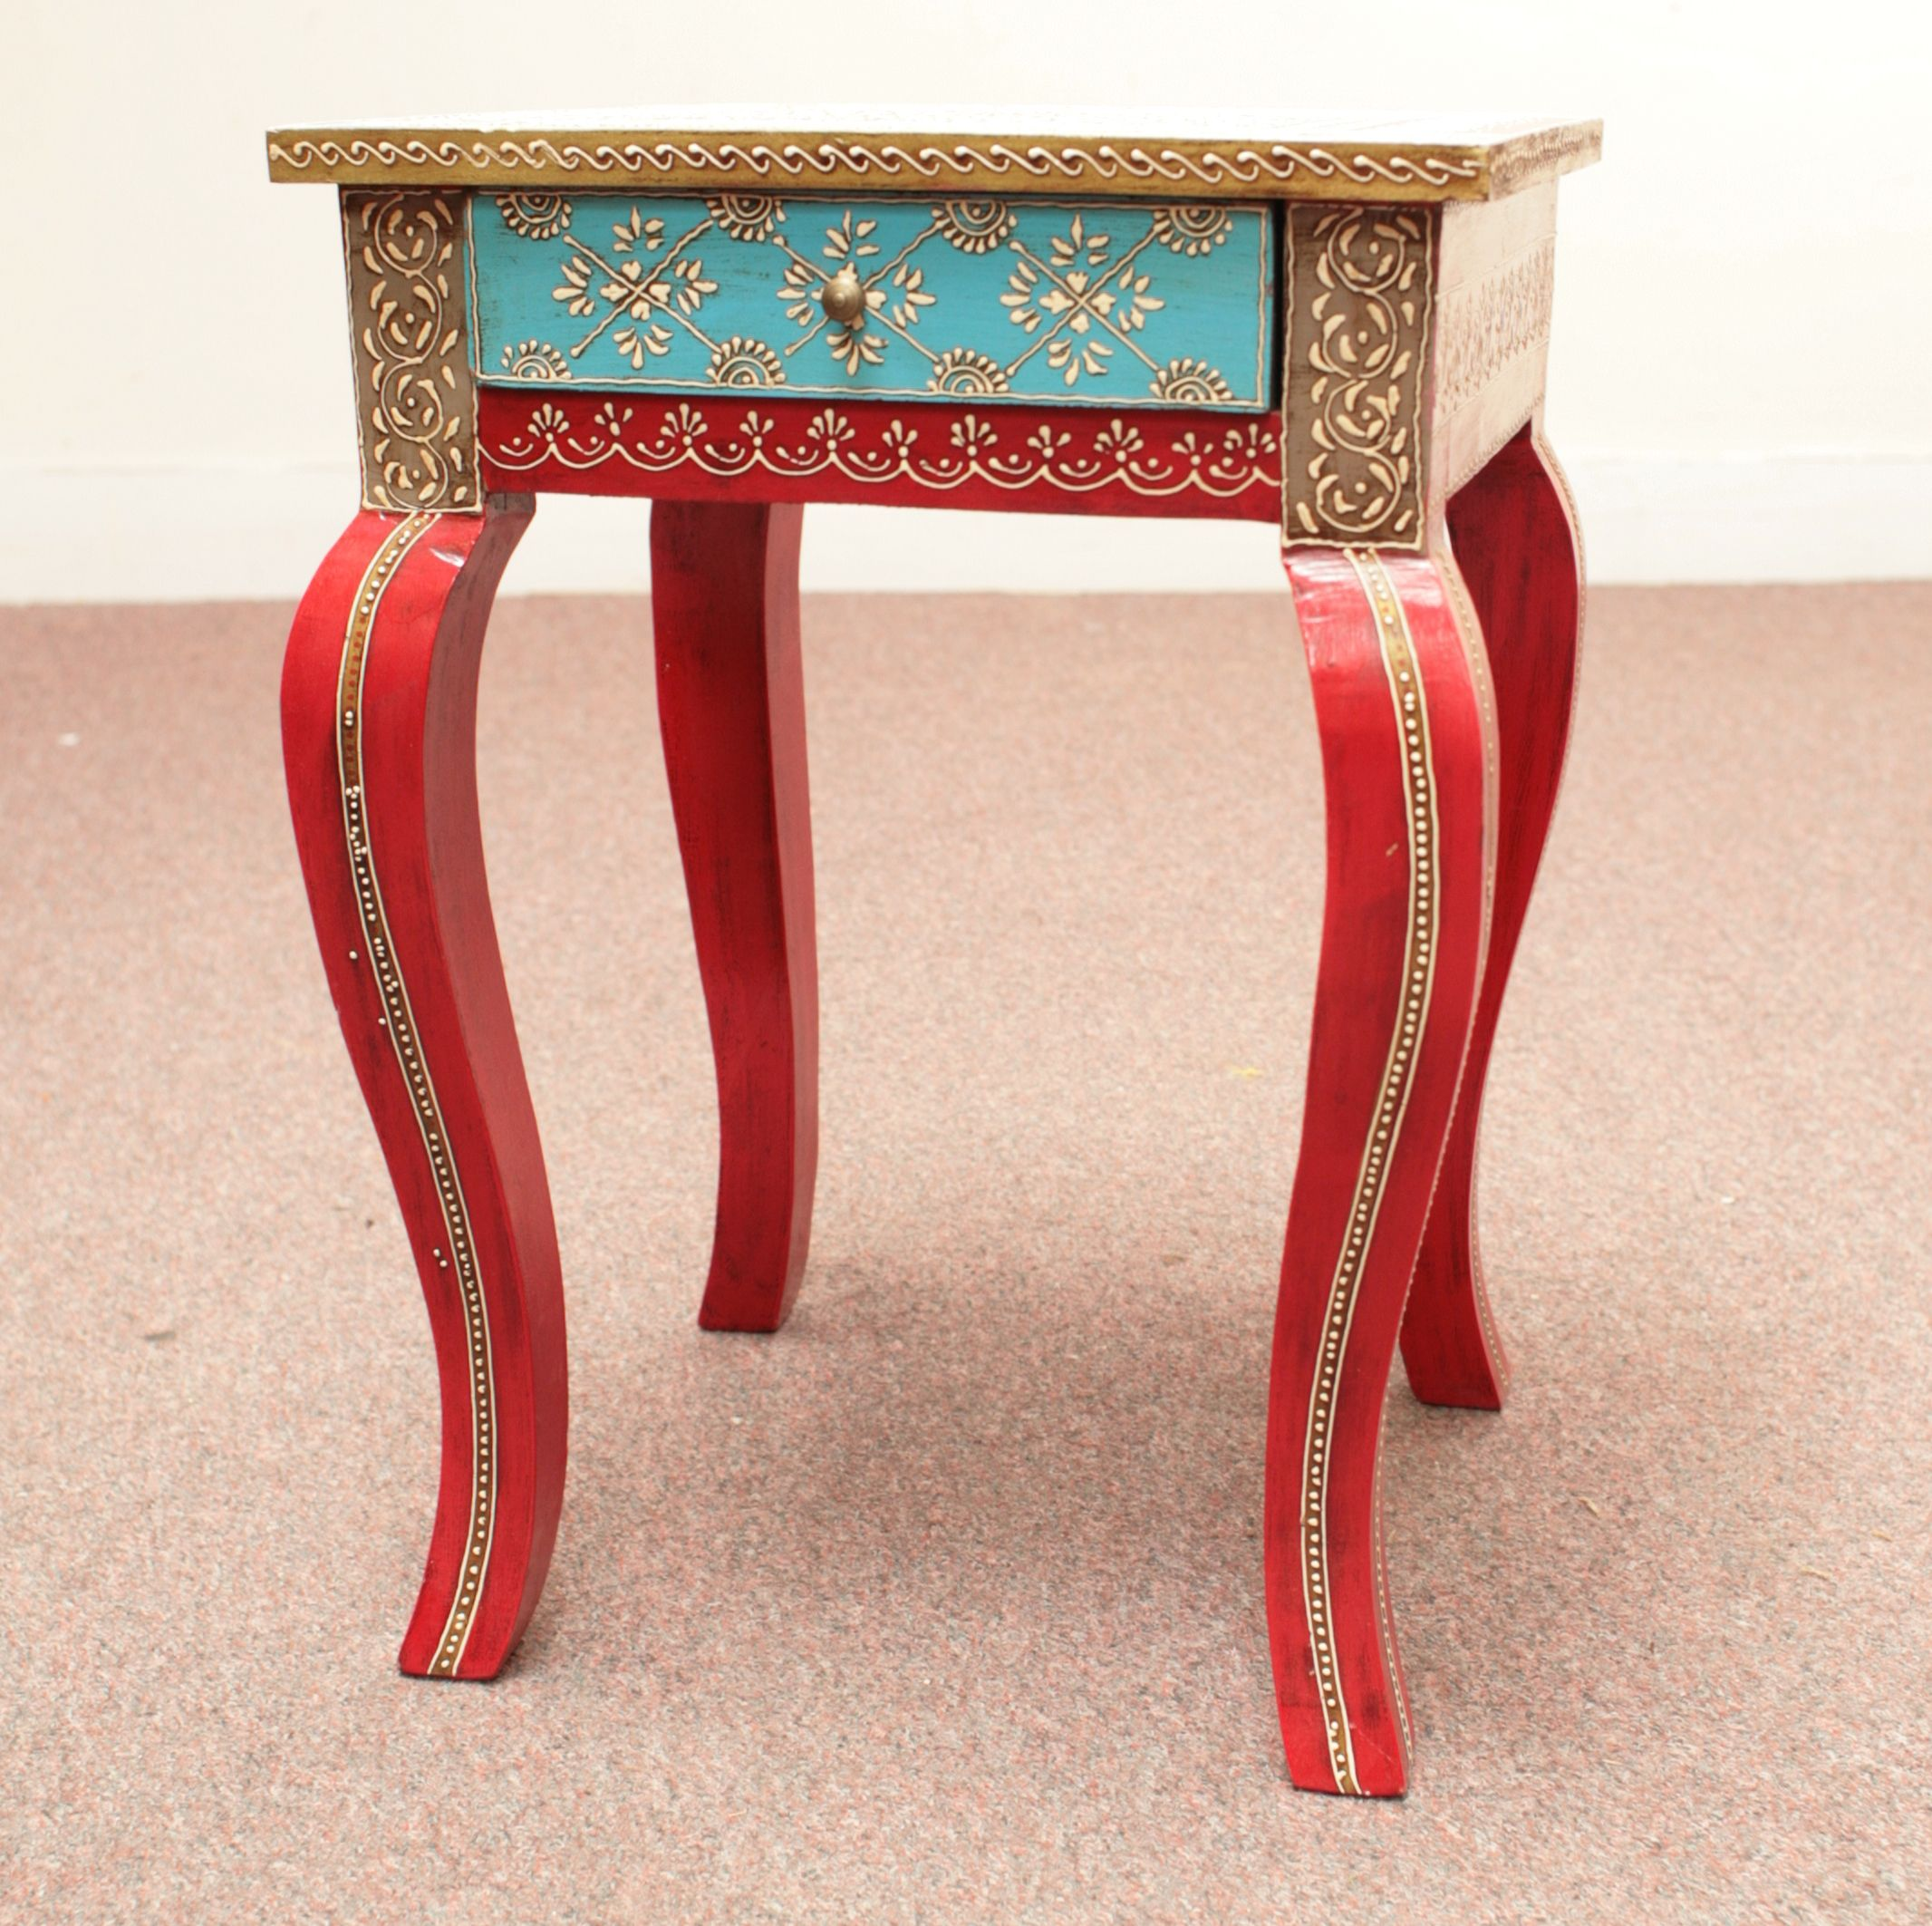 Painted Furniture from India indianfurniture